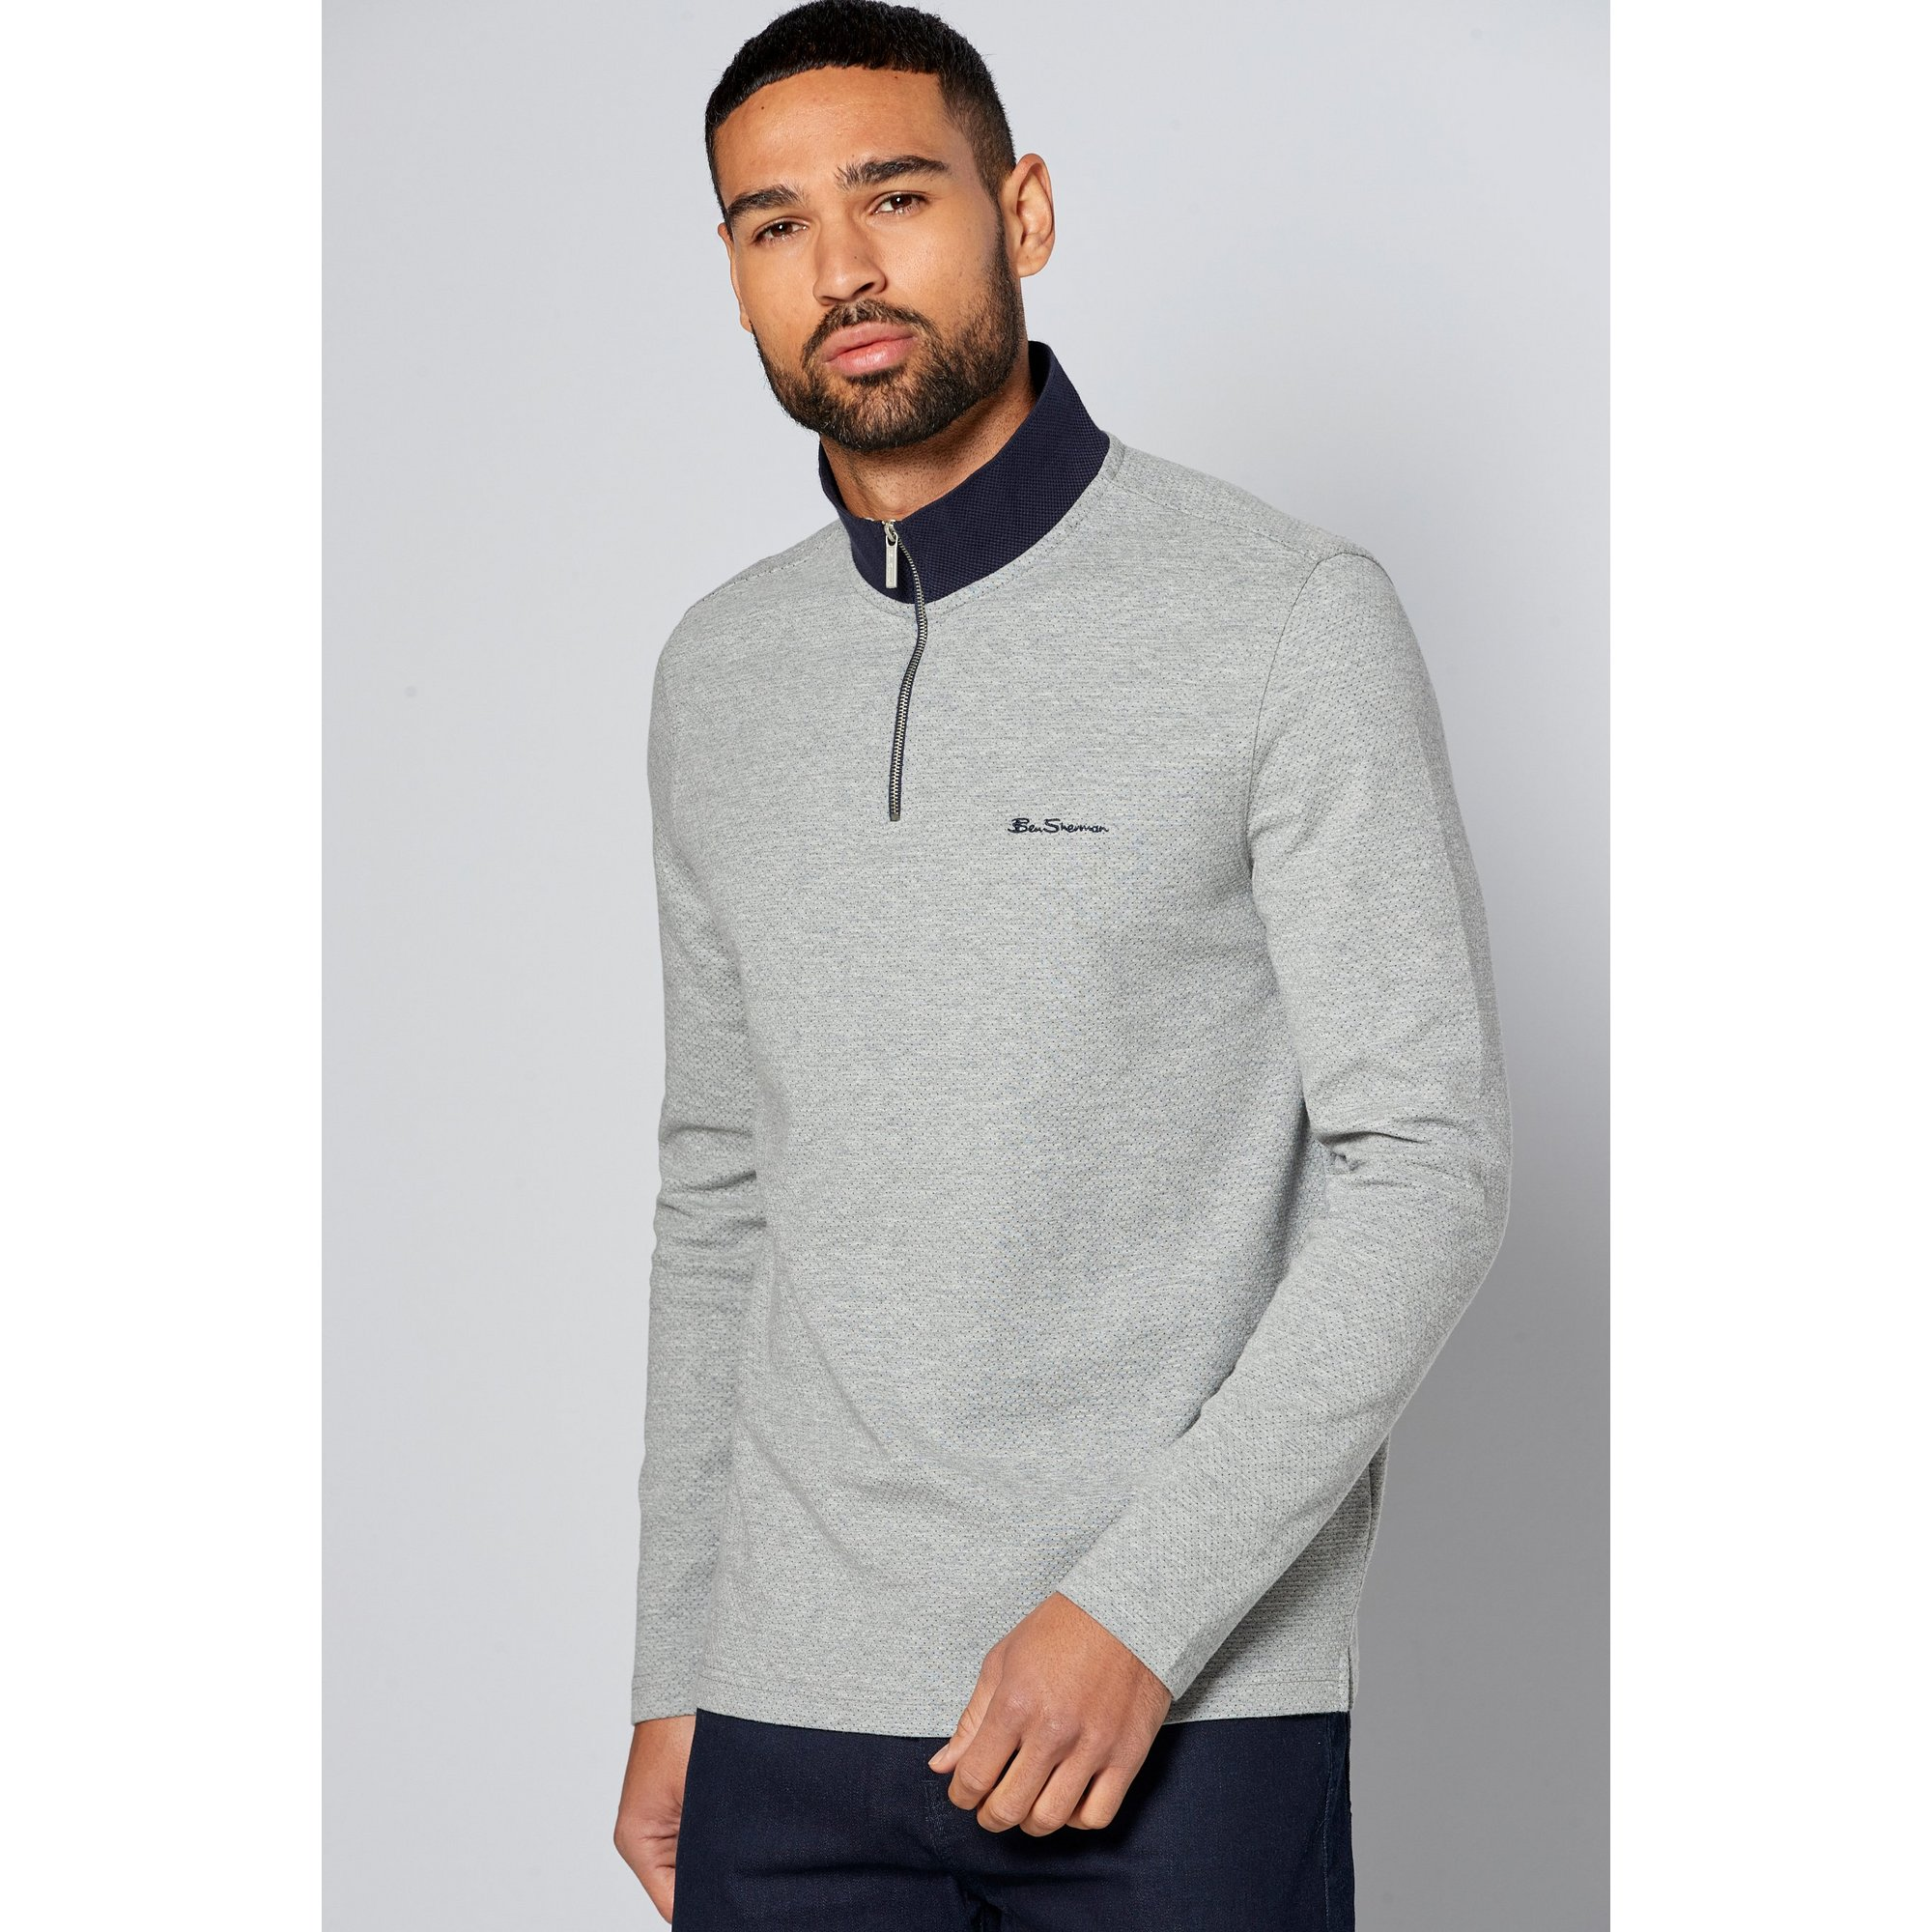 Image of Ben Sherman 1/4 Zip Sweatshirt